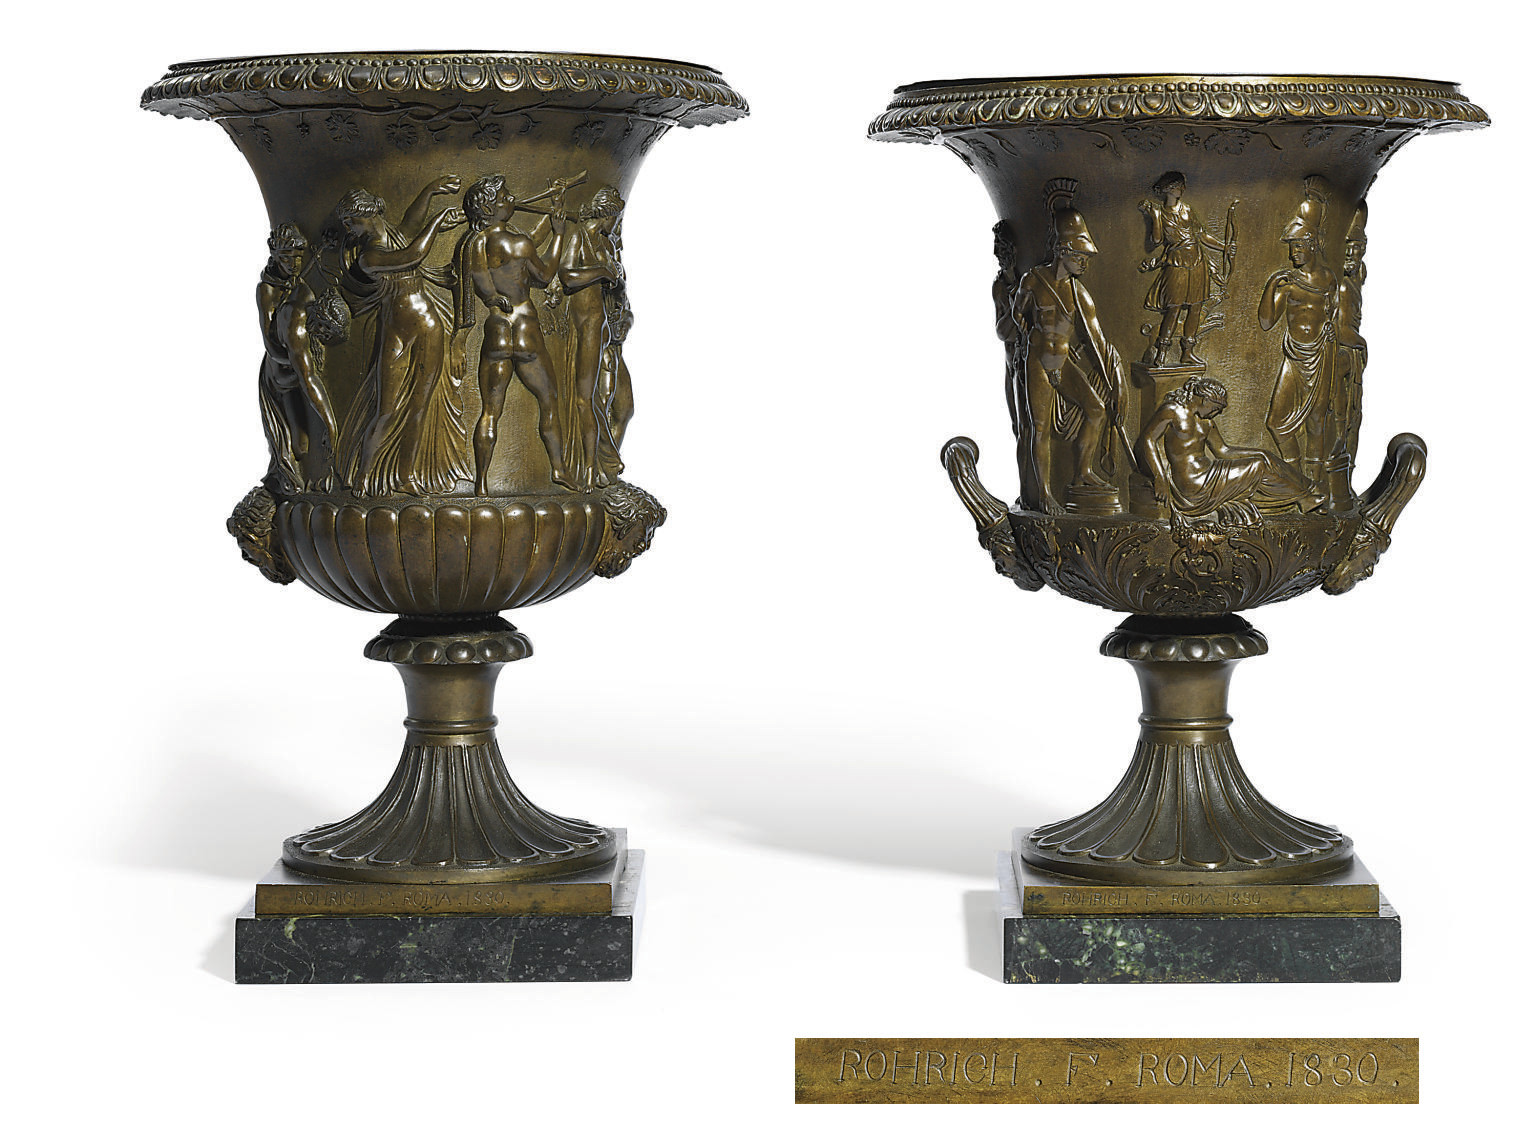 A PAIR OF BRONZE MODELS OF THE